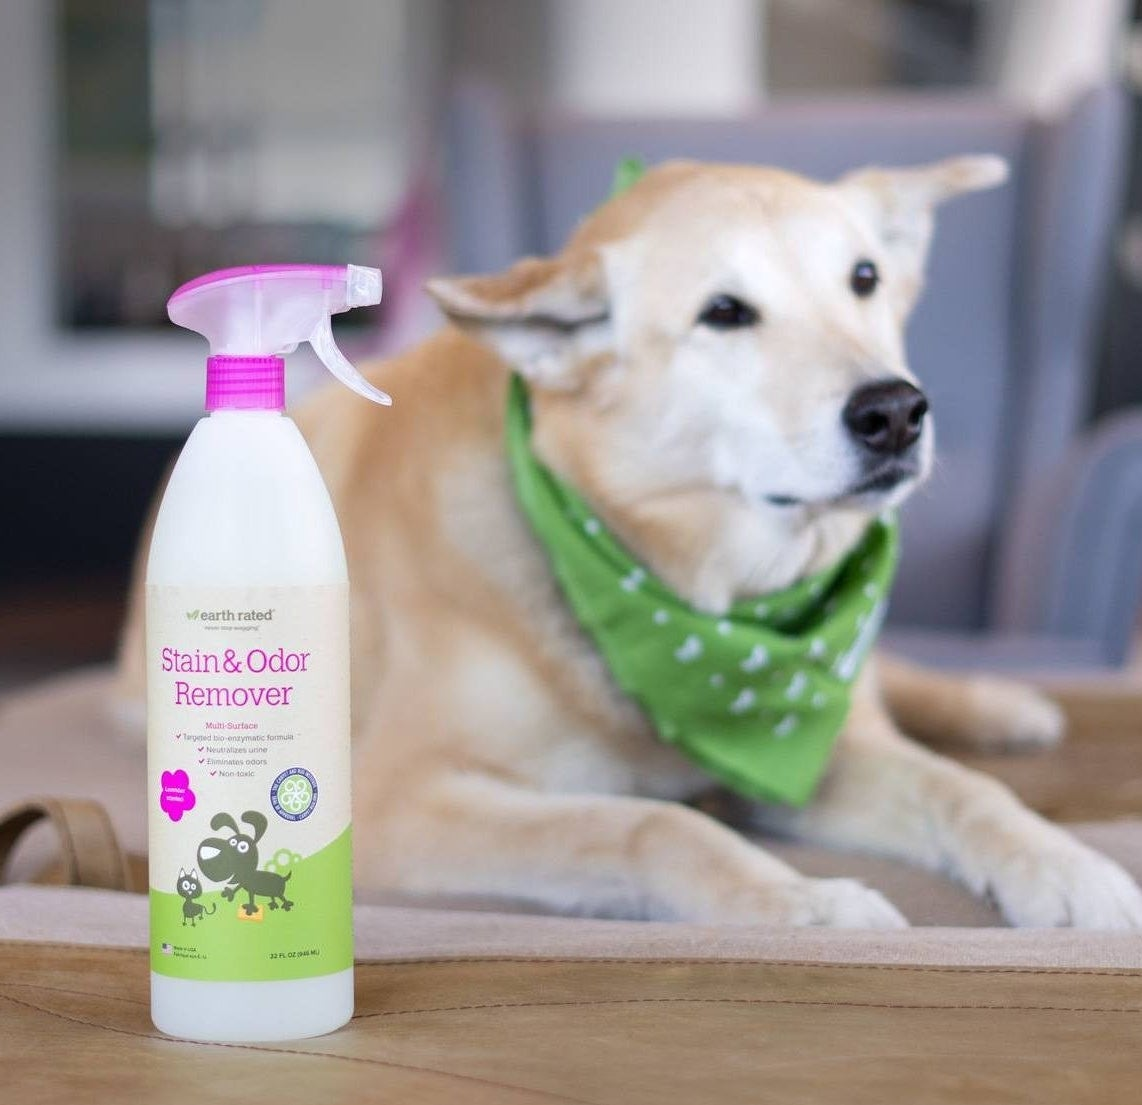 The pet stain and odor remover